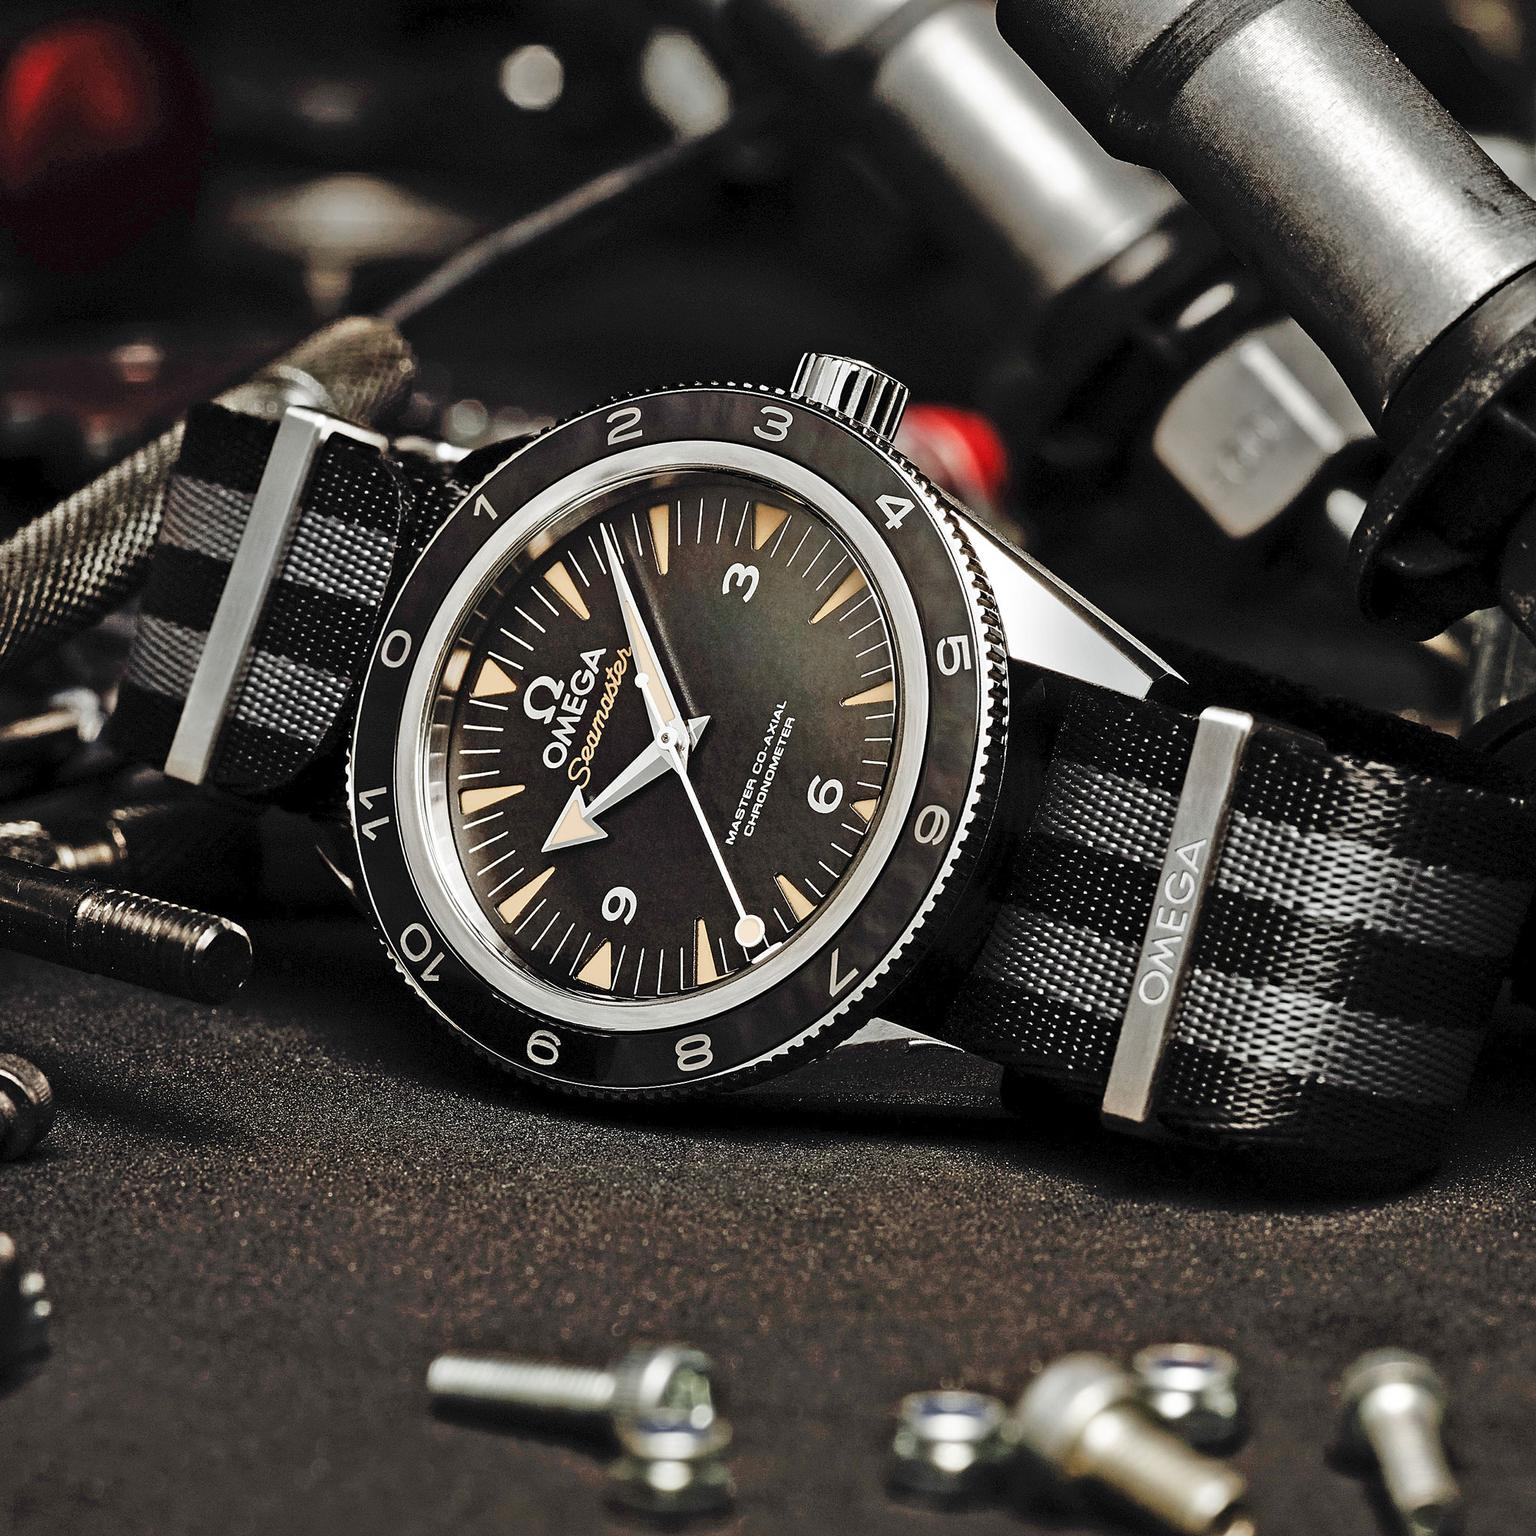 James Bond Omega Seamaster 300 Spectre watch with NATO strap